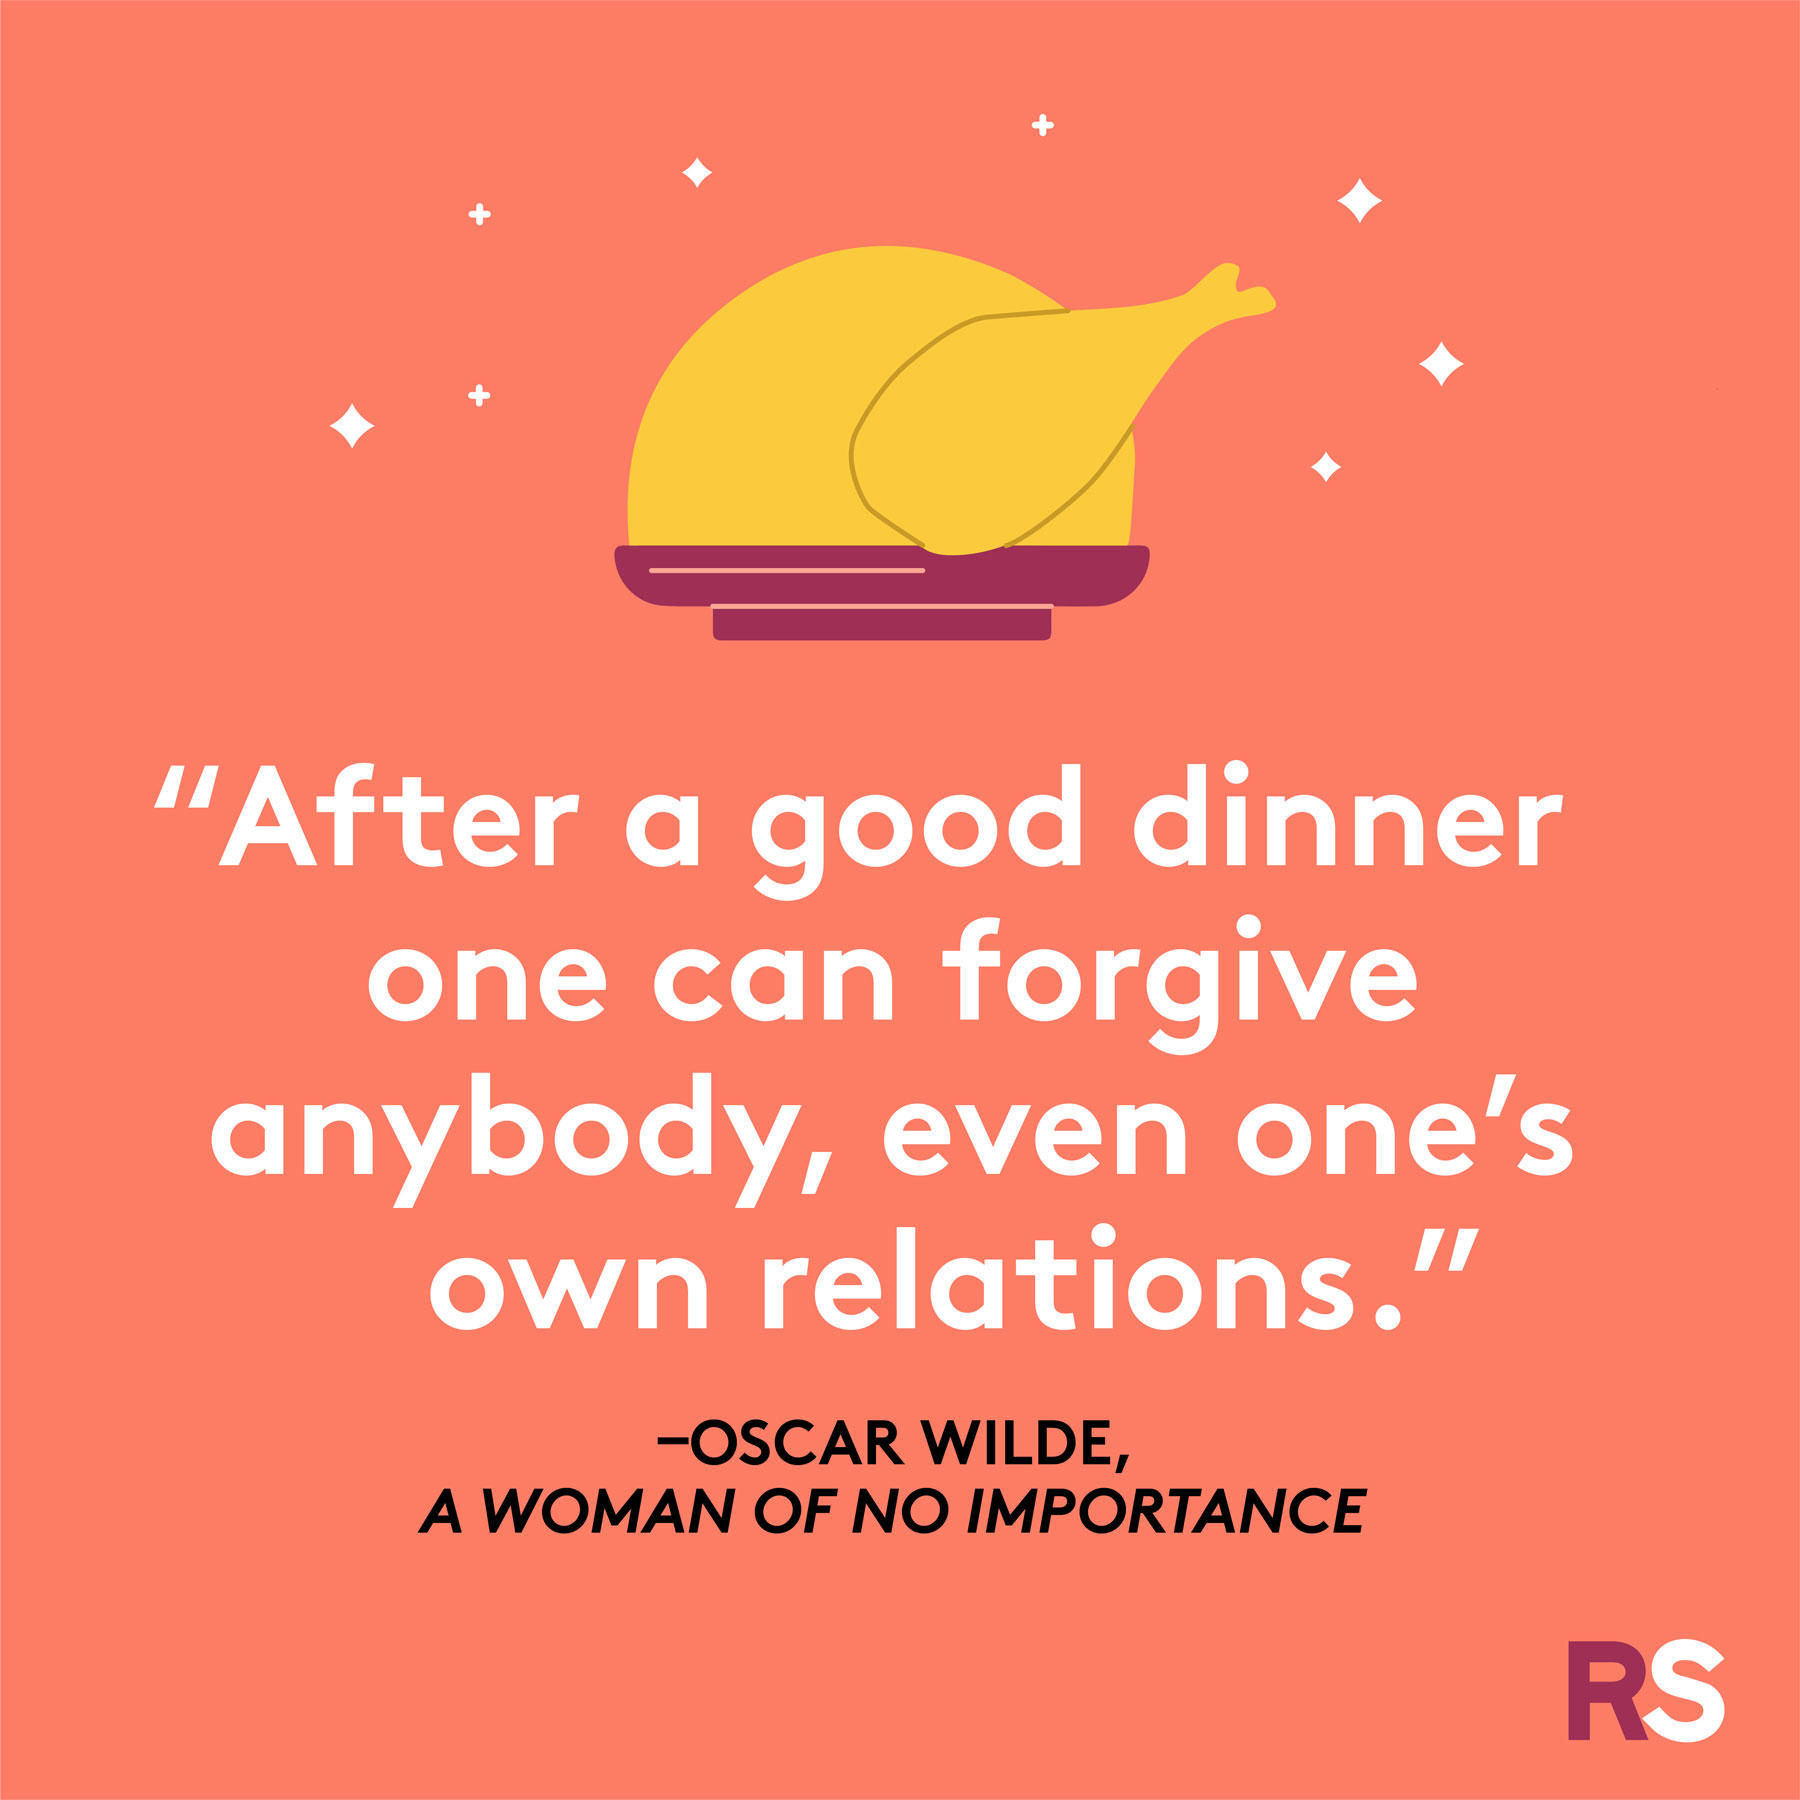 Thanksgiving wishes, messages, captions - Oscar Wilde